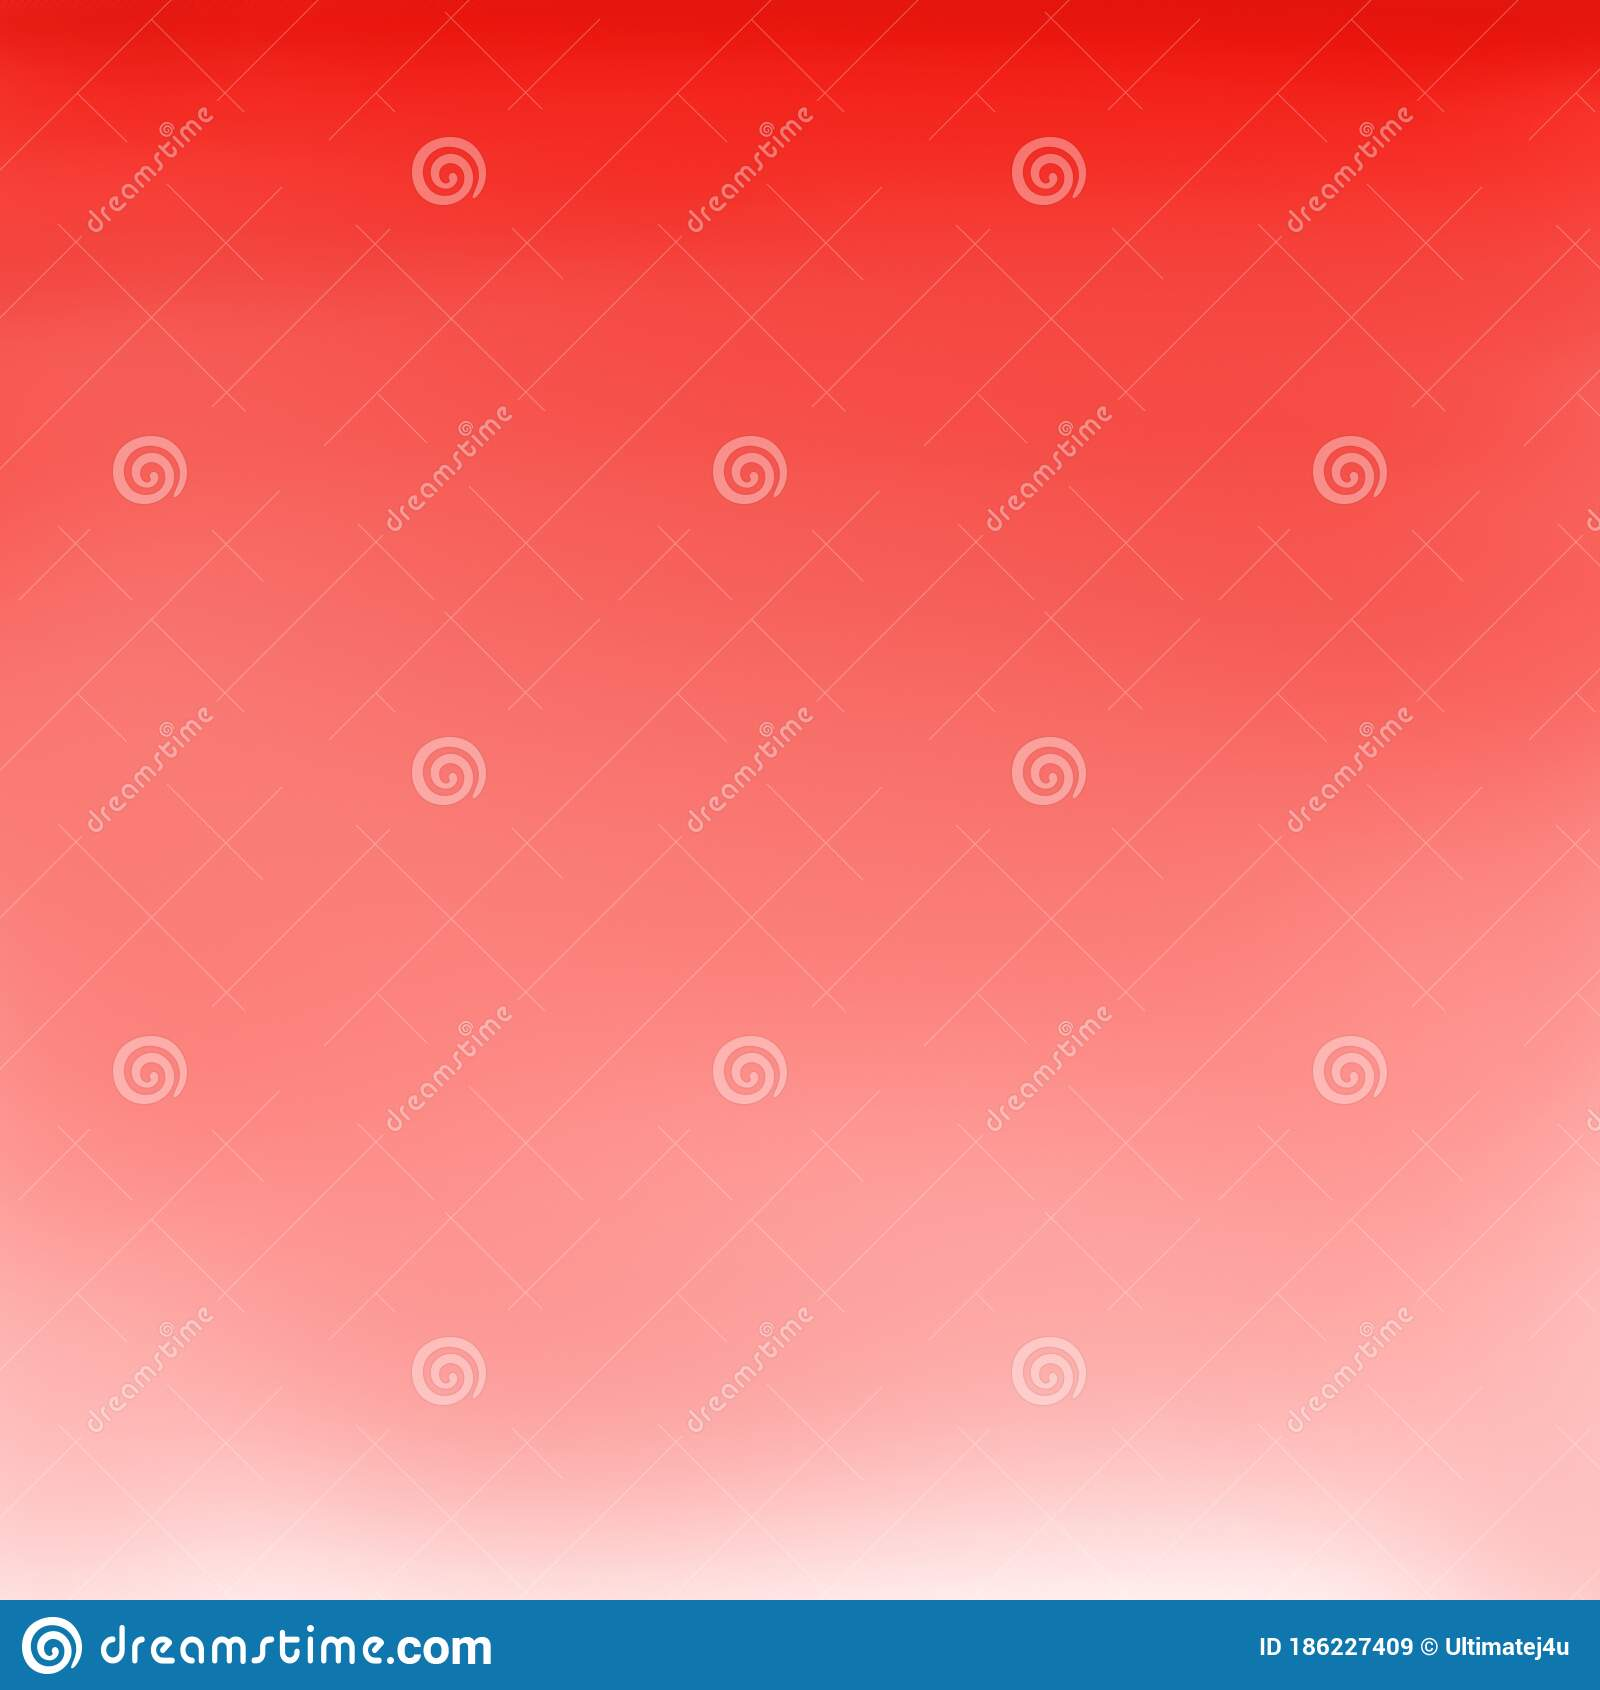 82 Rose Gold Cute Backgrounds Photos - Free & Royalty-Free Stock Photos  from Dreamstime